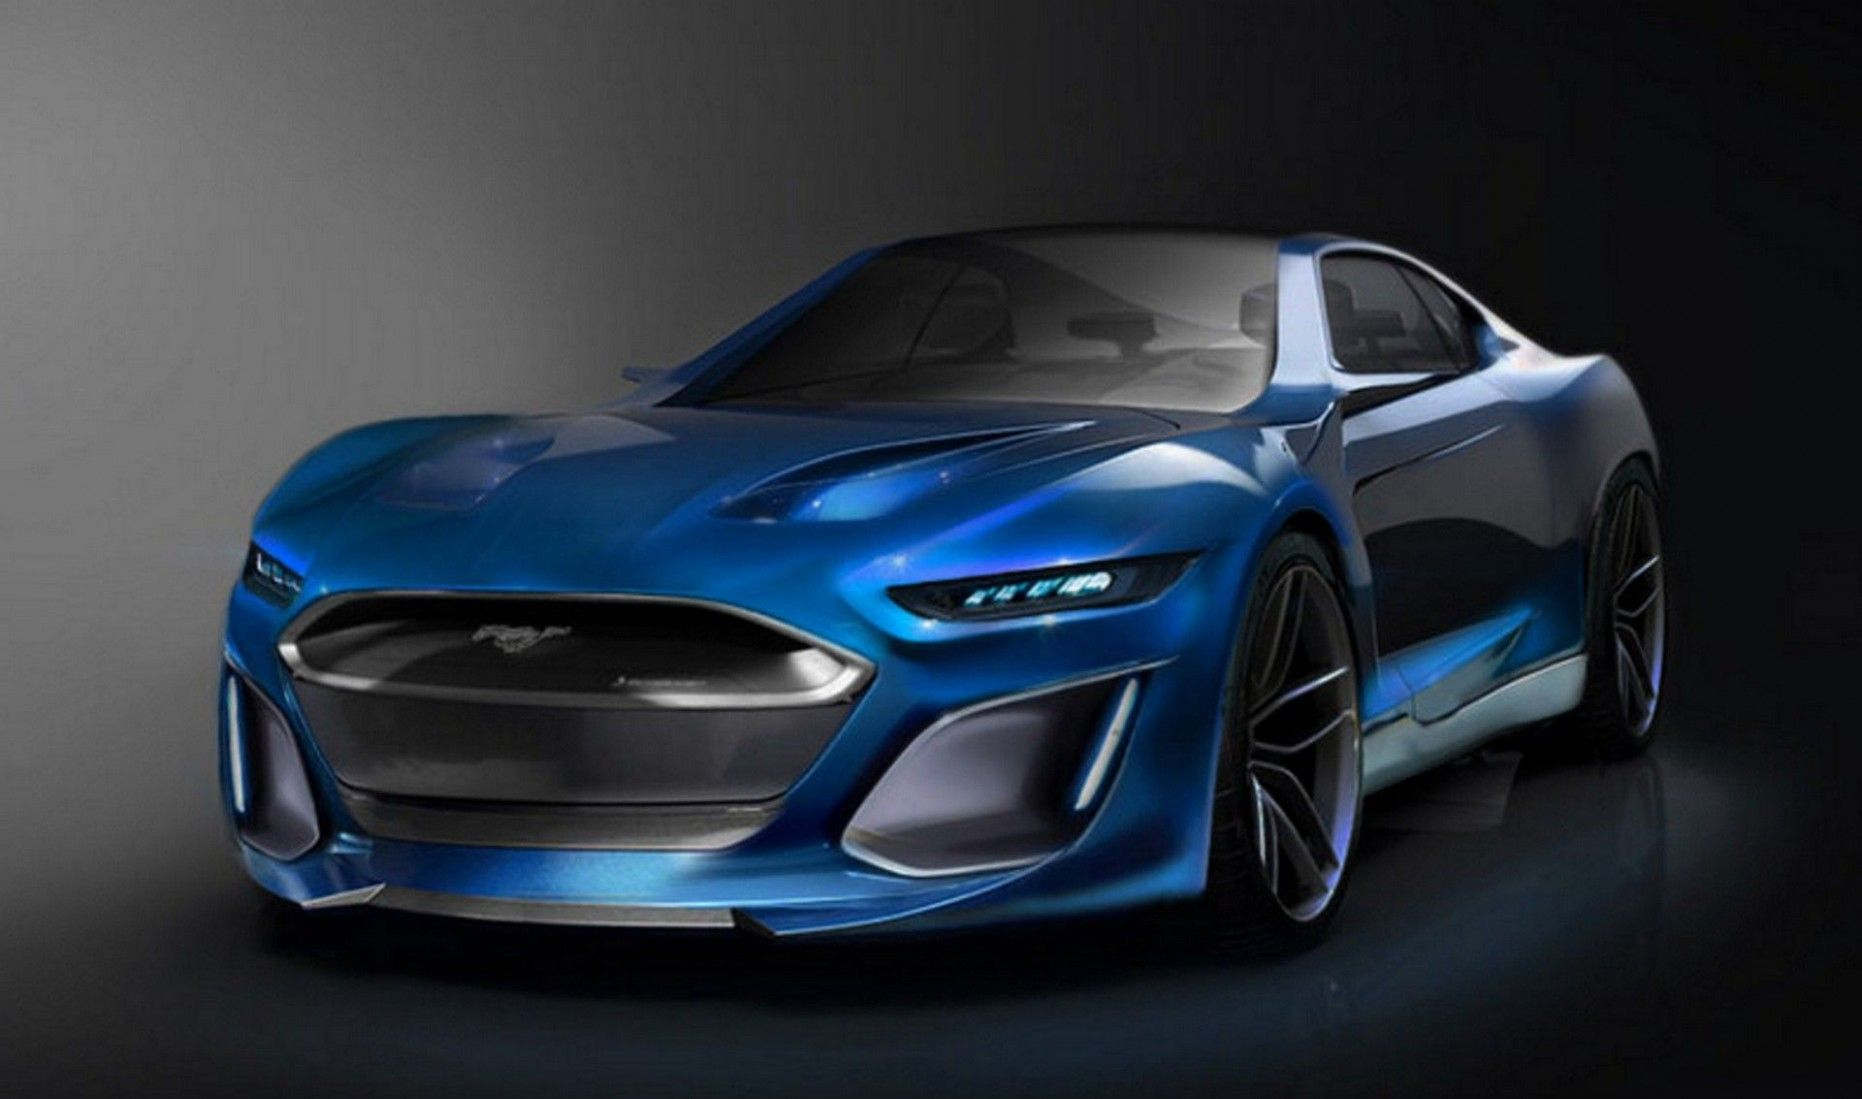 2021 Ford Mustang In 2020 Ford Mustang Ford Mustang Price Concept Cars